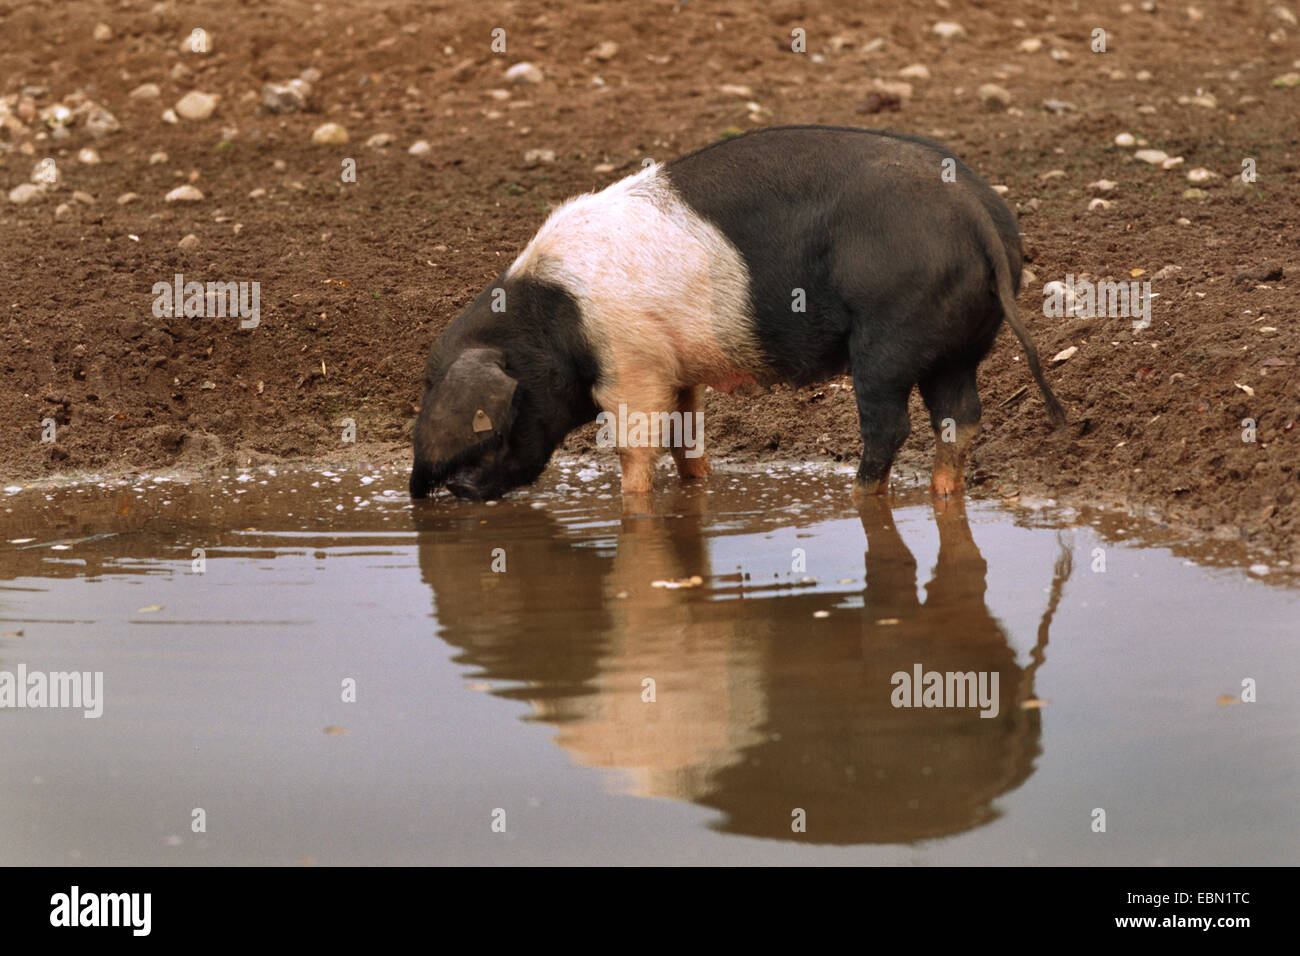 Angeln Saddleback (Sus scrofa f. domestica), drinking in a pond - Stock Image